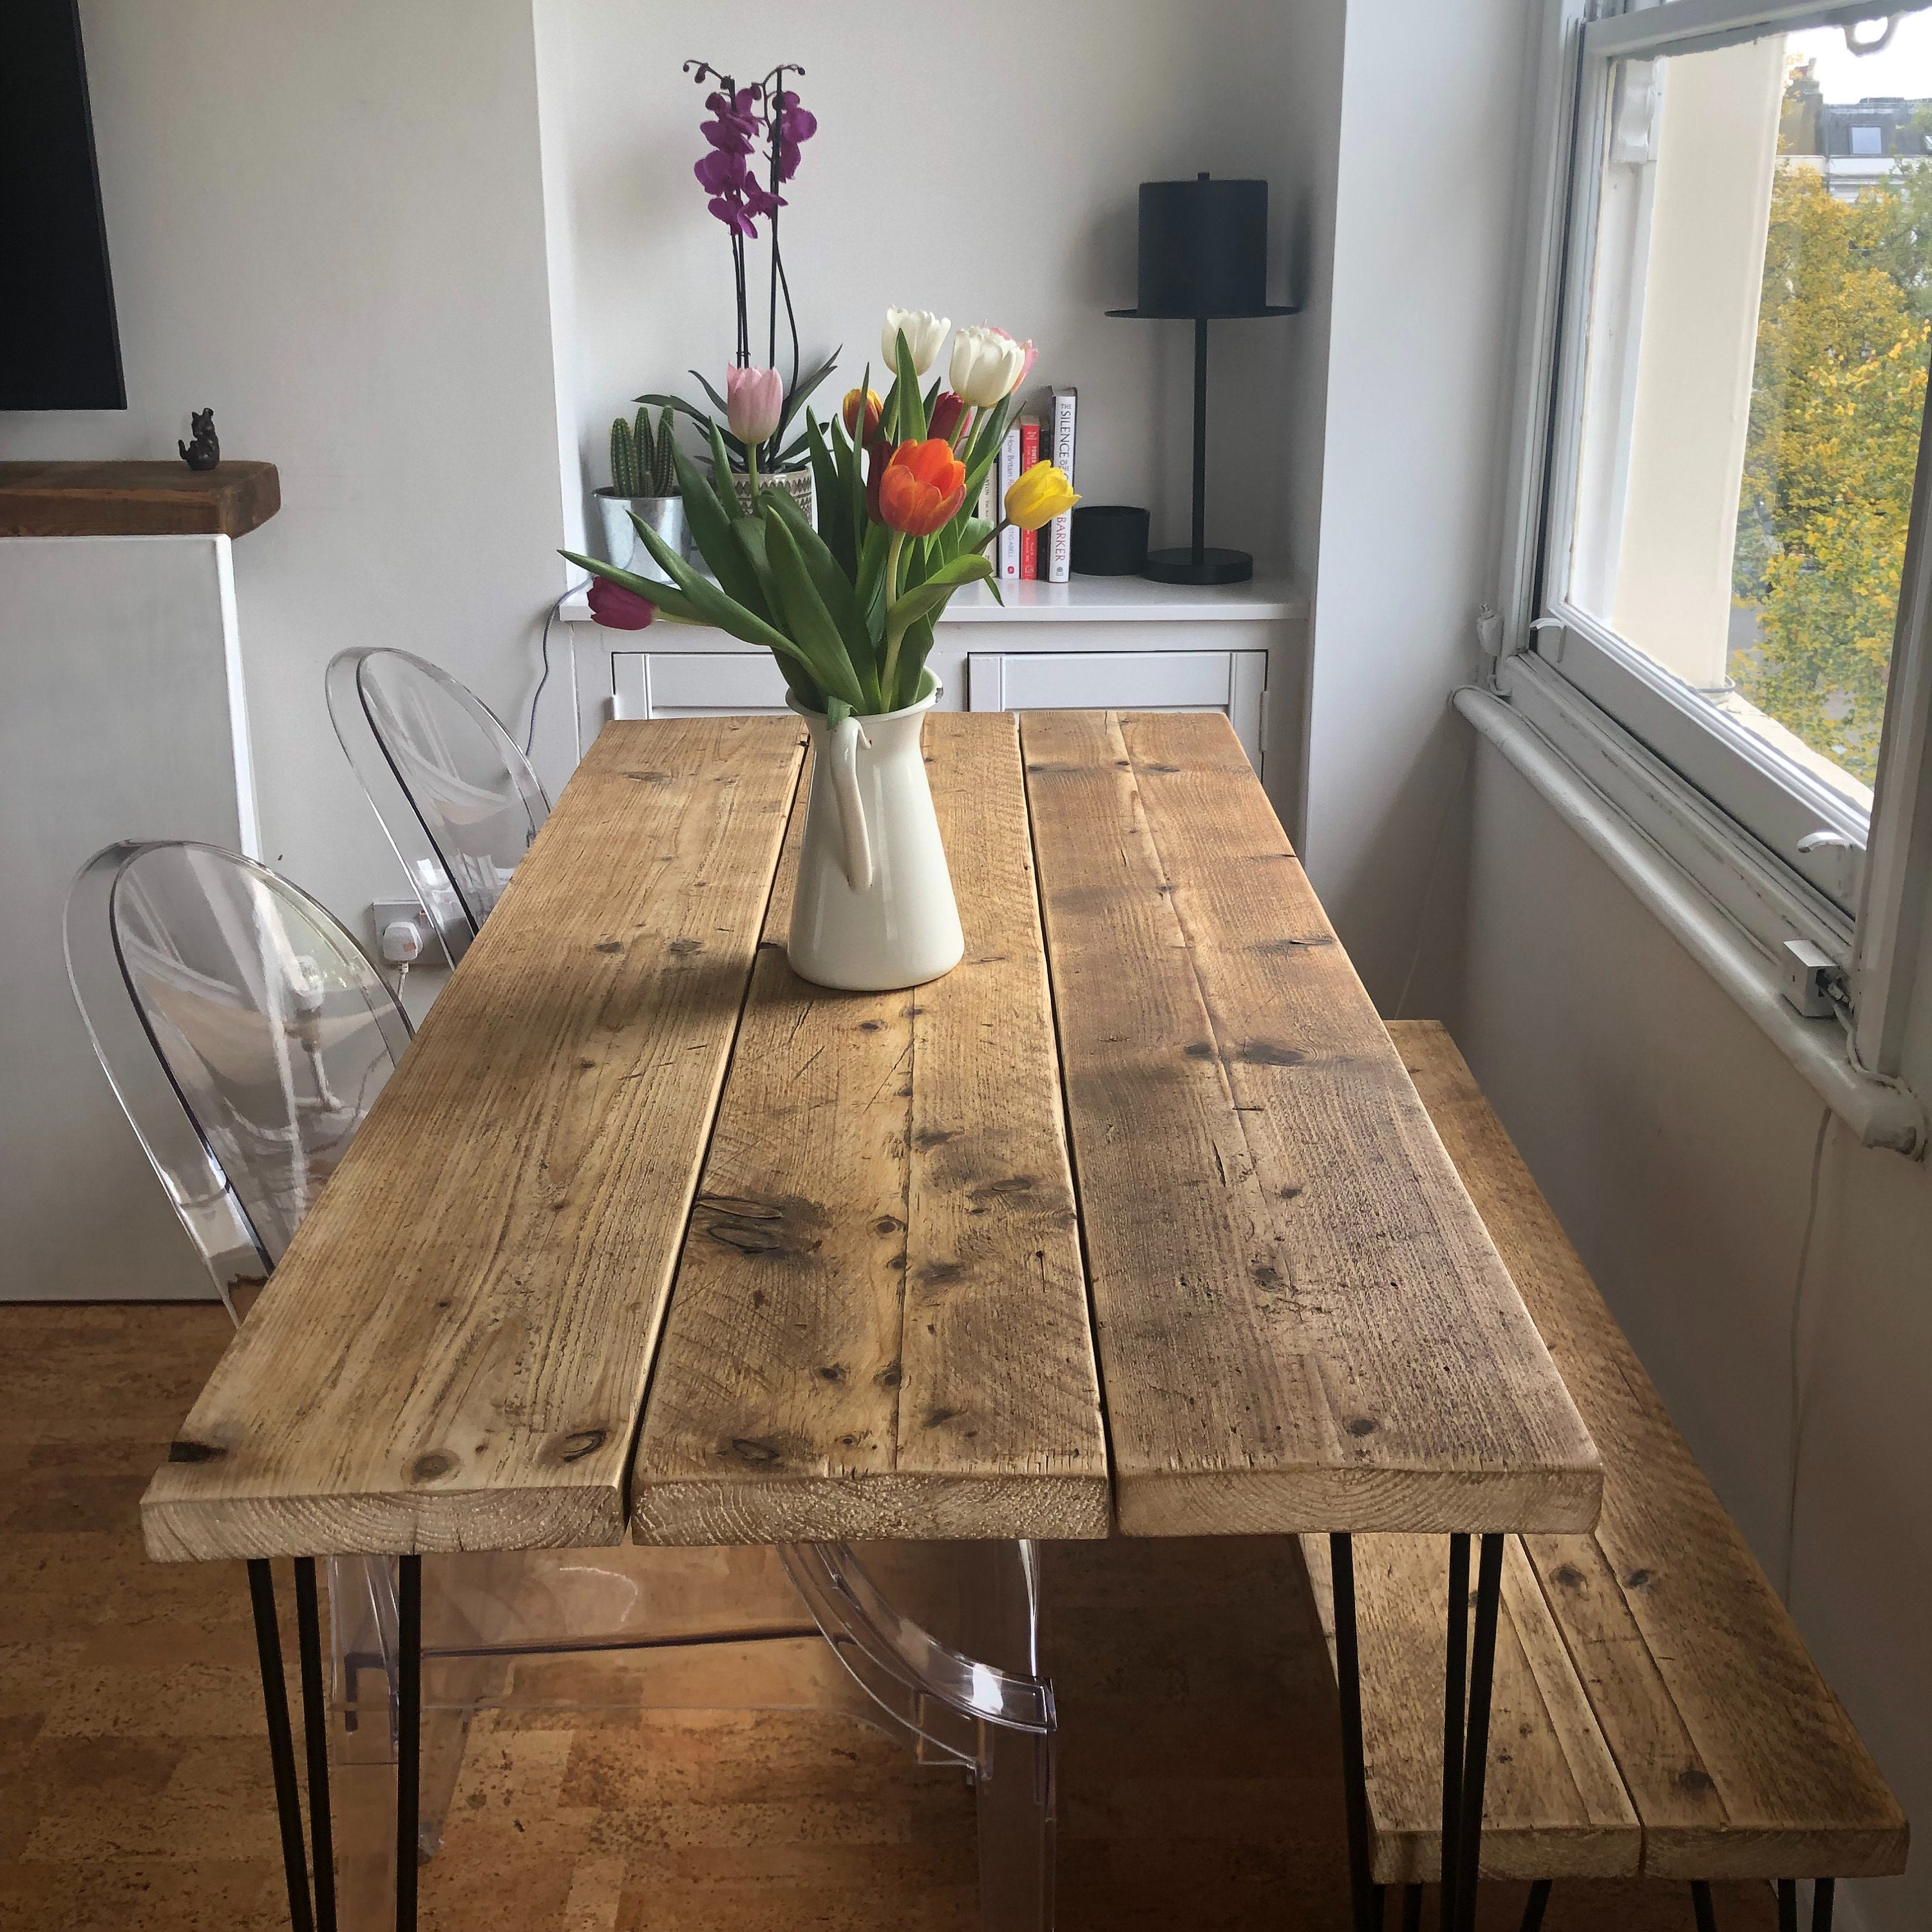 Wondrous Scaffolding Board Desk Reclaimed Desk With Hairpin Legs With Vintage Steel Drawers Andrewgaddart Wooden Chair Designs For Living Room Andrewgaddartcom